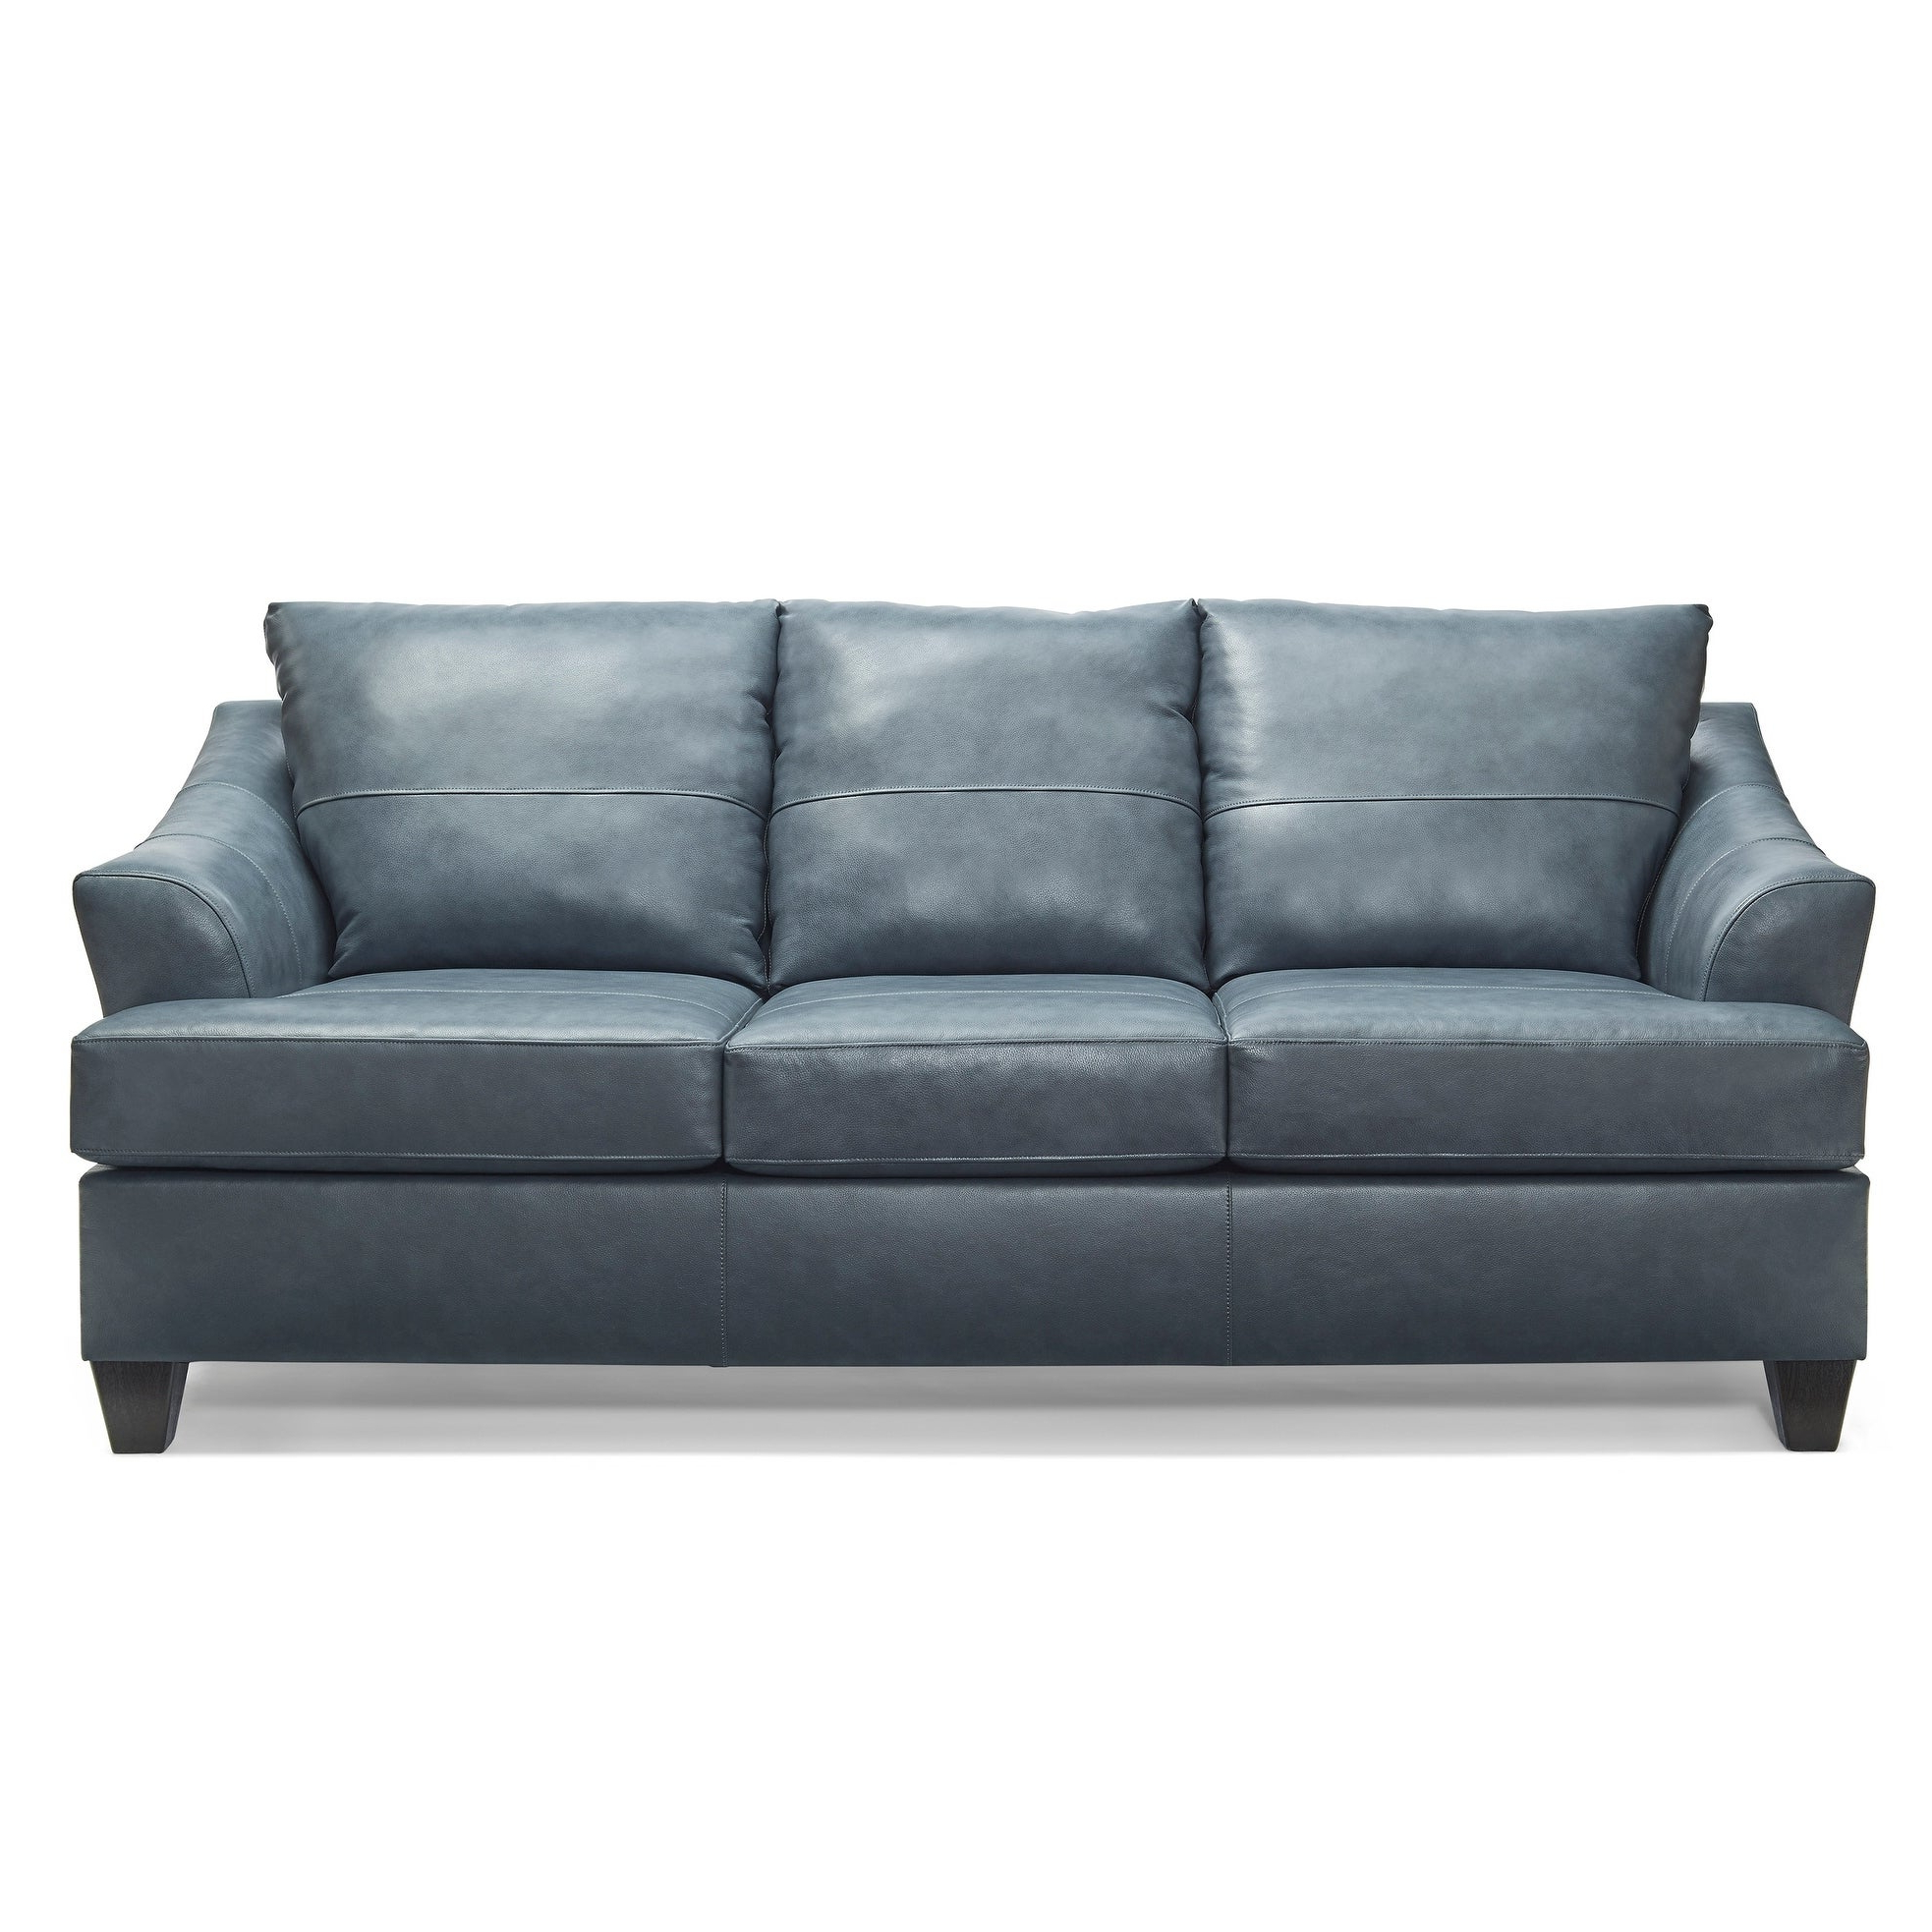 Most Popular Judith Top Grain Leather Sofa Intended For Landis Loveseats With Cushions (View 11 of 25)